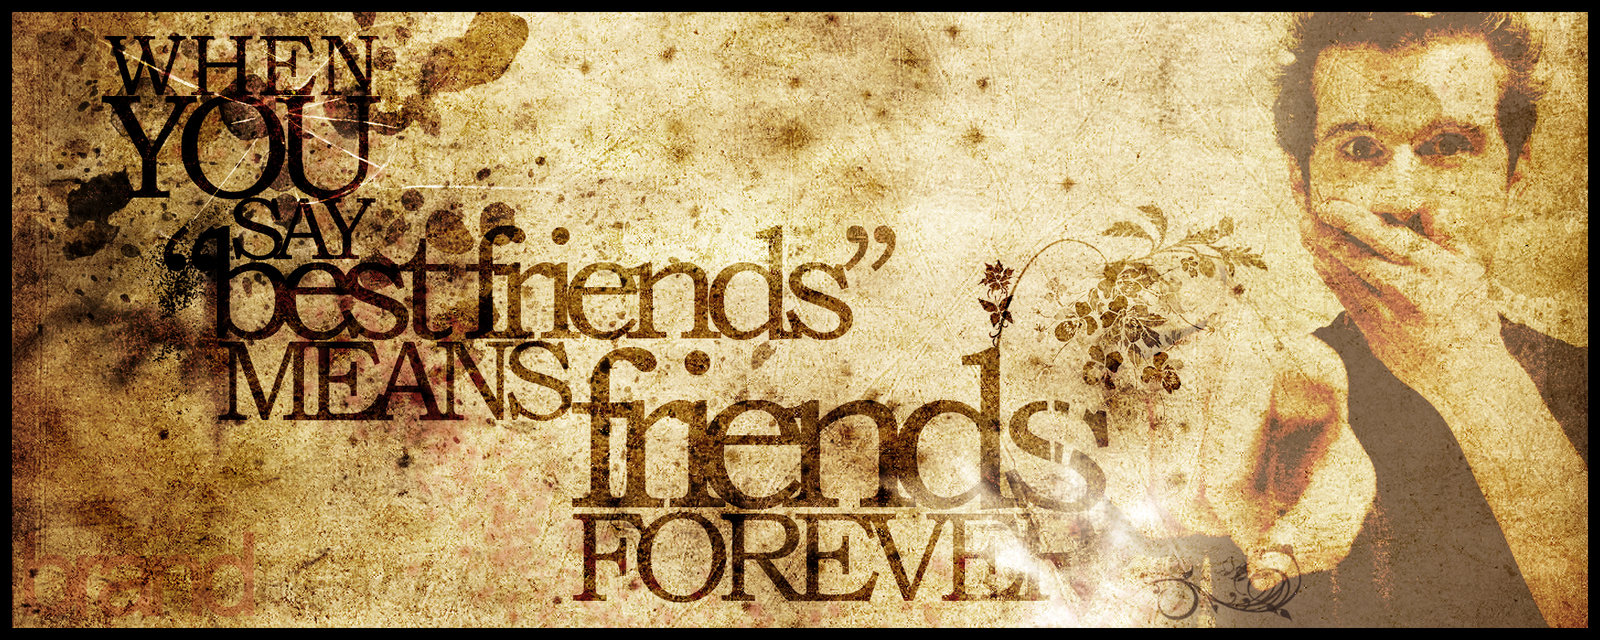 FrienDshipS Images Best Friend Forever HD Wallpaper And Background Photos